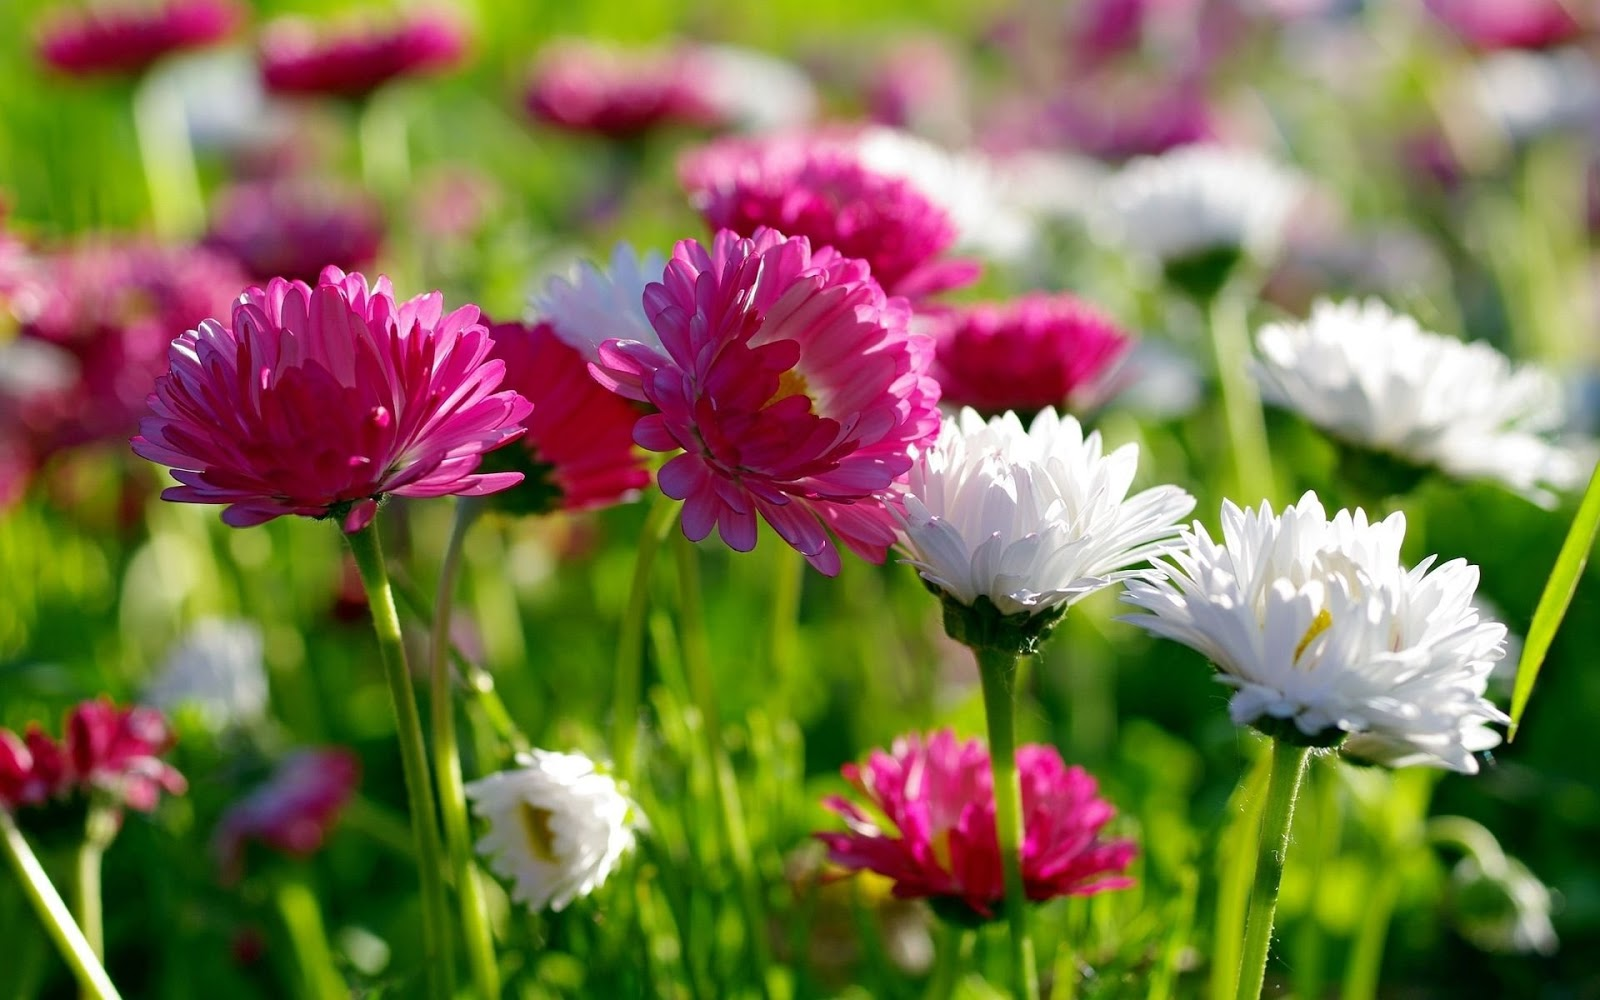 FLOWERS Tweet This Bookmark this on Delicious: hdwallpapersstop.blogspot.com/2013/01/spring-flowers.html